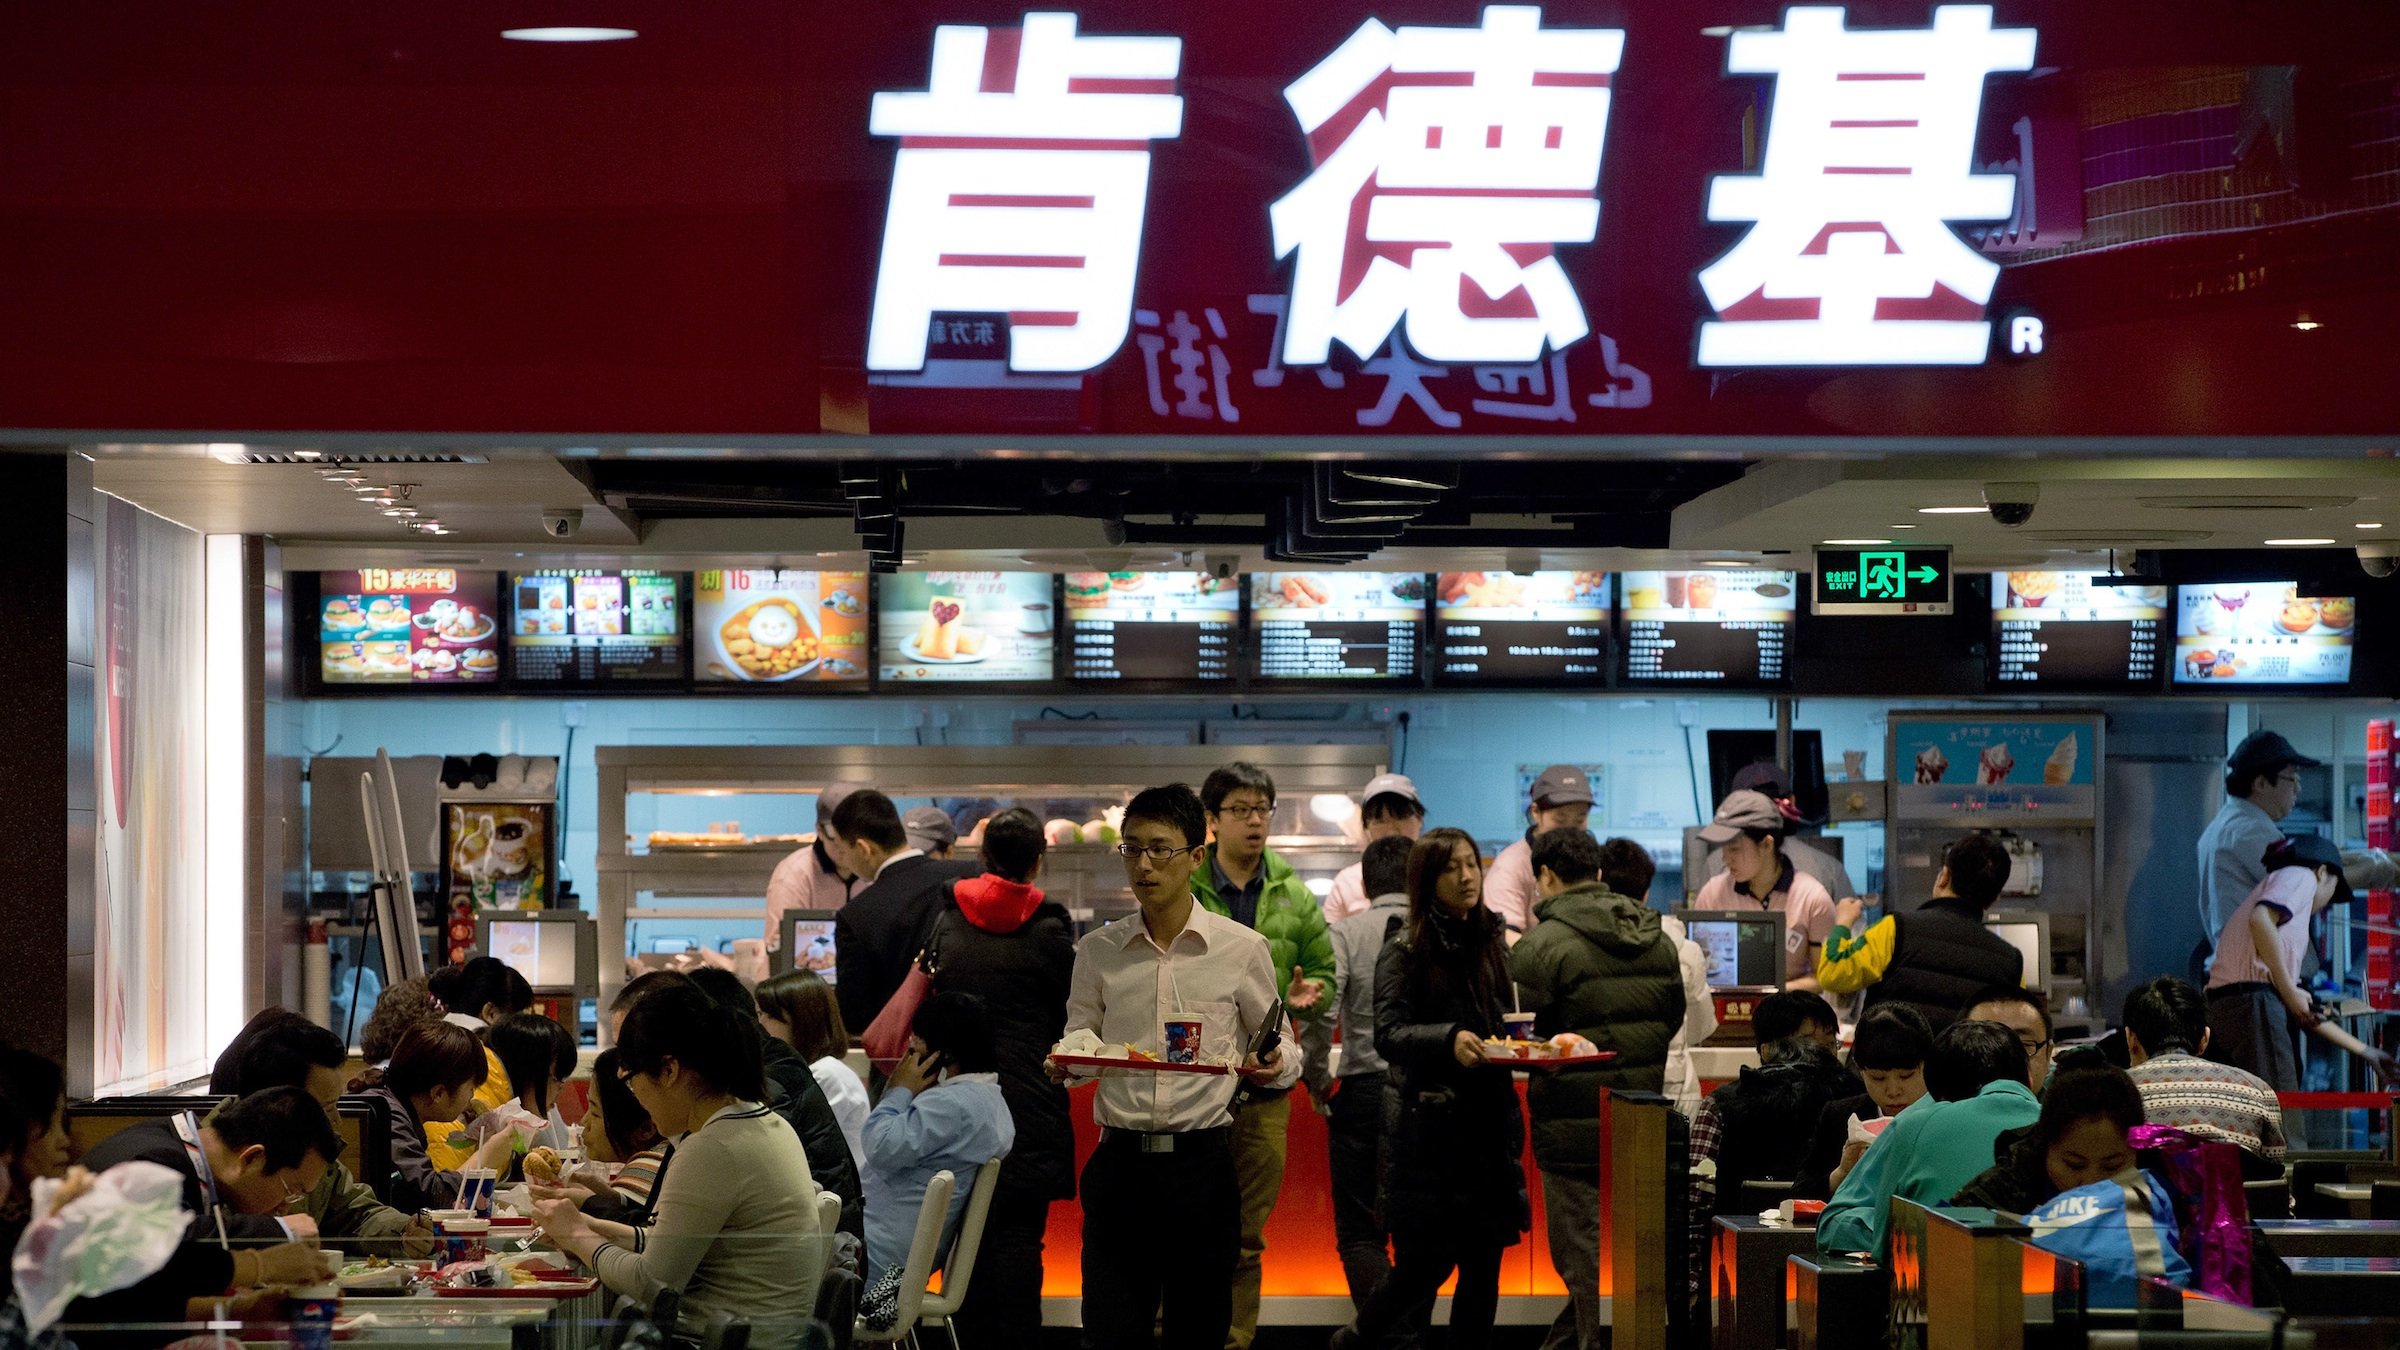 Customers buy meals at a KFC restaurant outlet at a shopping mall in Beijing Monday, Feb. 25, 2013. KFC launched a campaign Monday to rebuild its battered brand in China, promising tighter quality control after a scandal over misuse of drugs by its poultry suppliers. (AP Photo/Andy Wong)